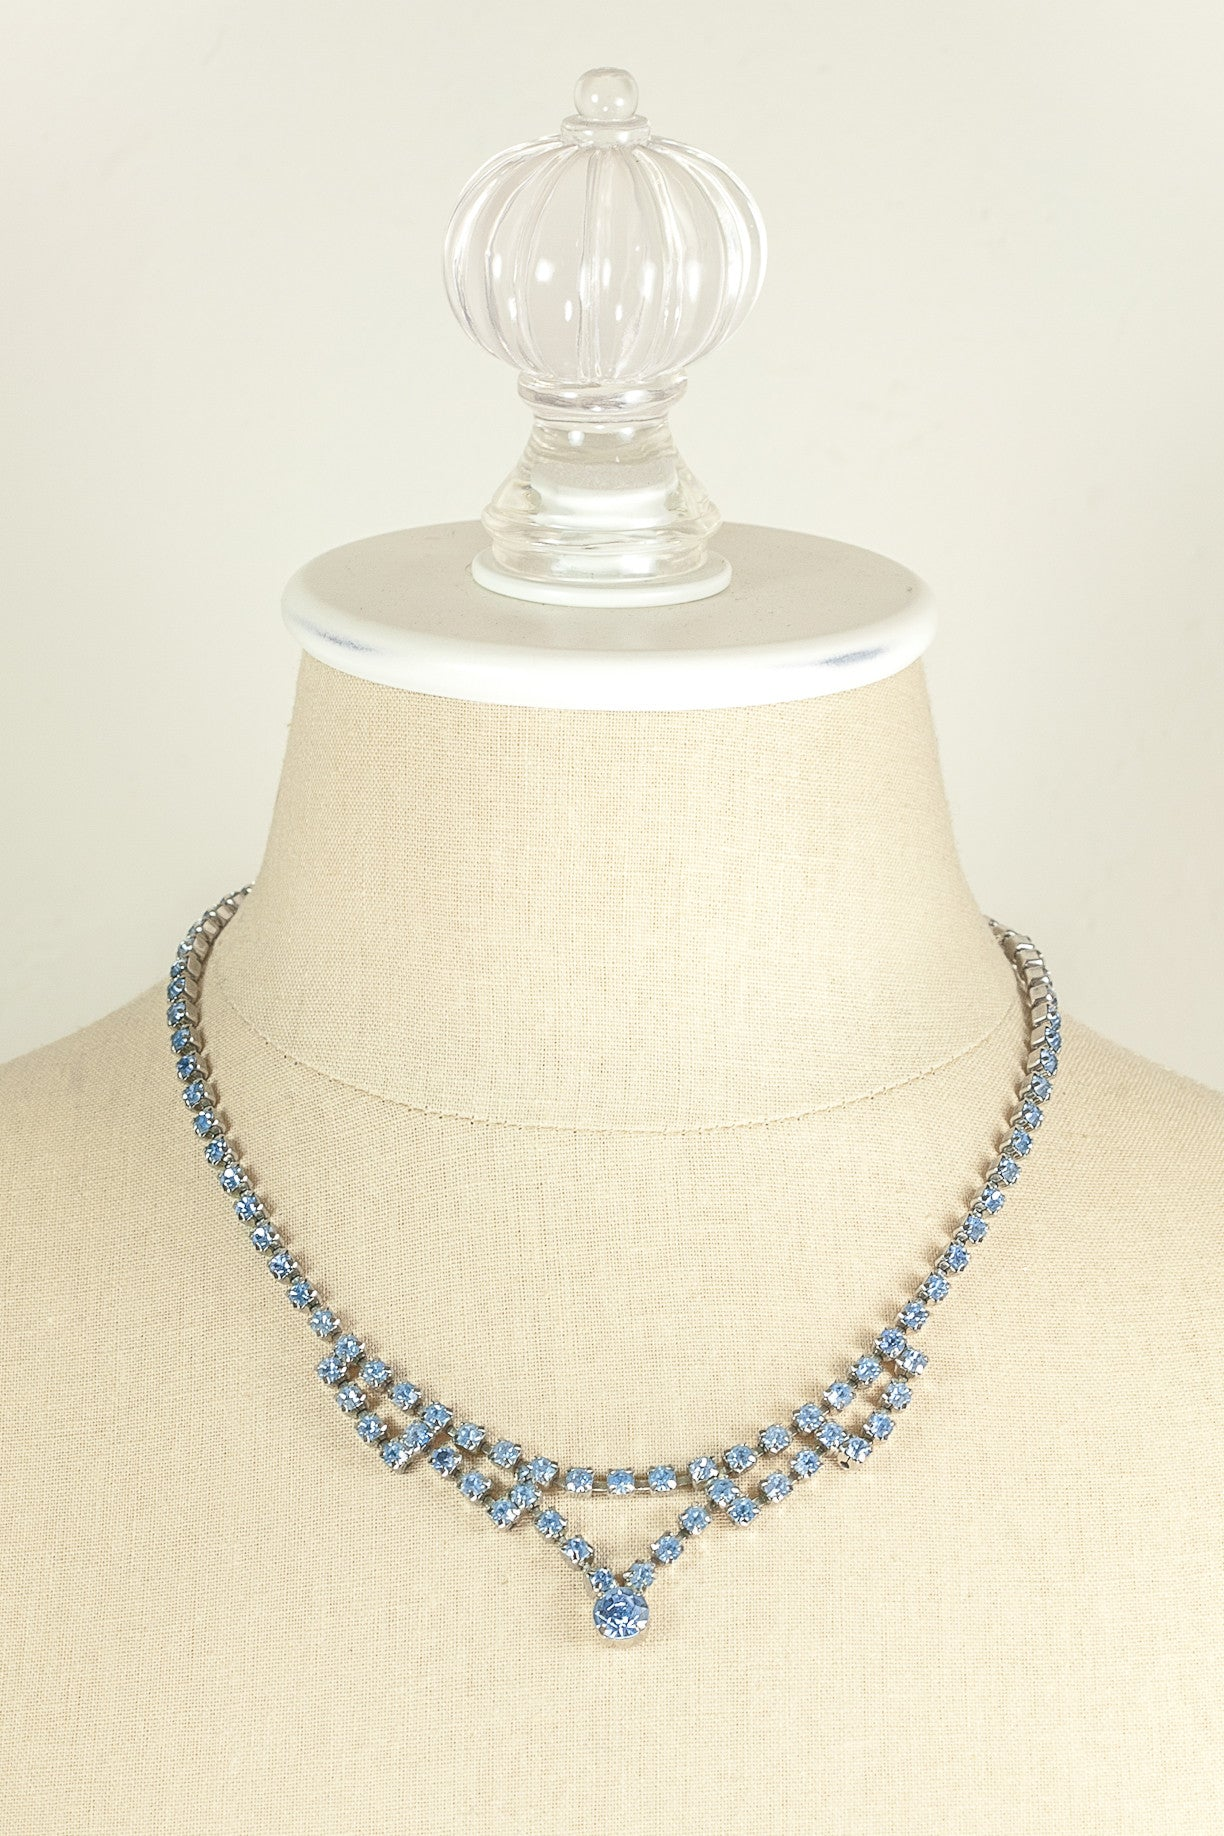 80's__Vintage__Blue Rhinestone Necklace